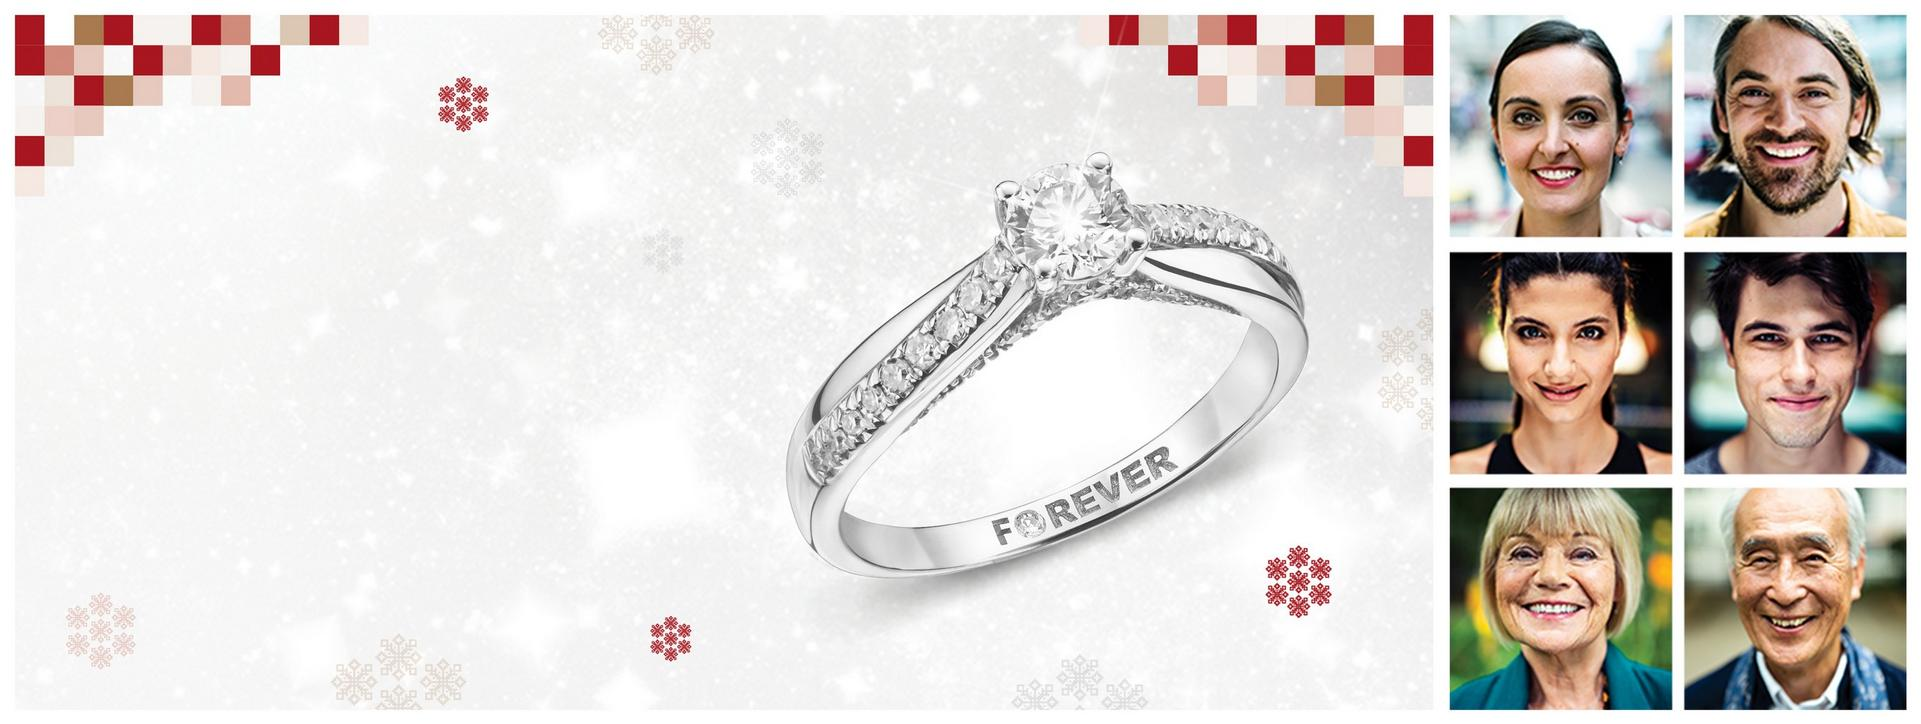 Up To Half Price Engagement Rings - Shop Now